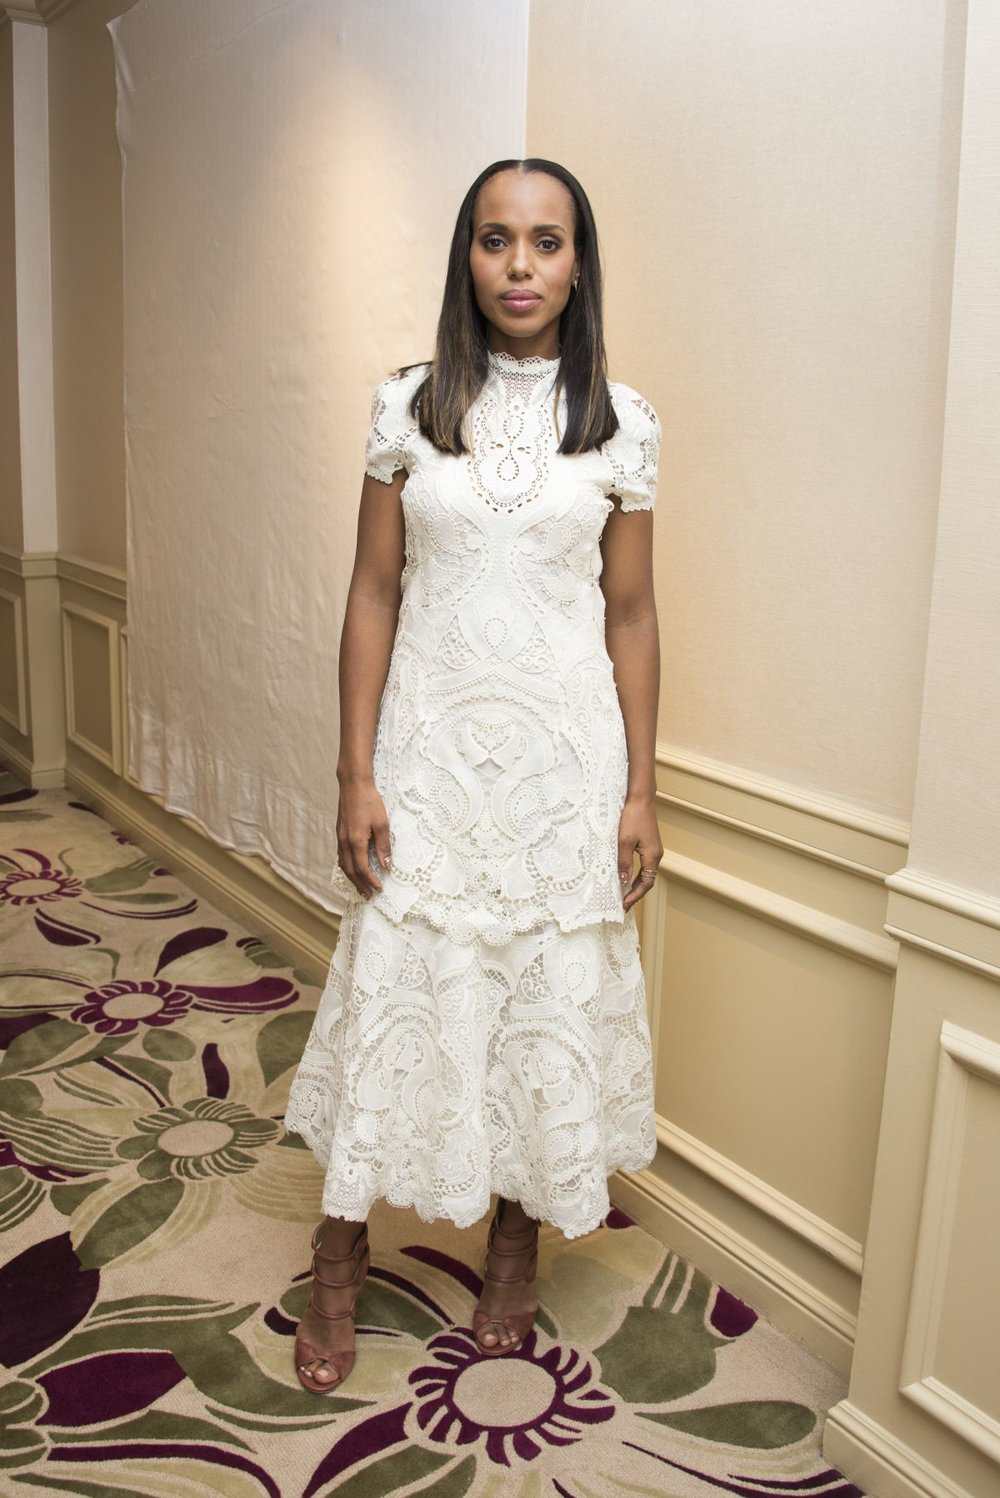 Kerry Washington wears Larkspur